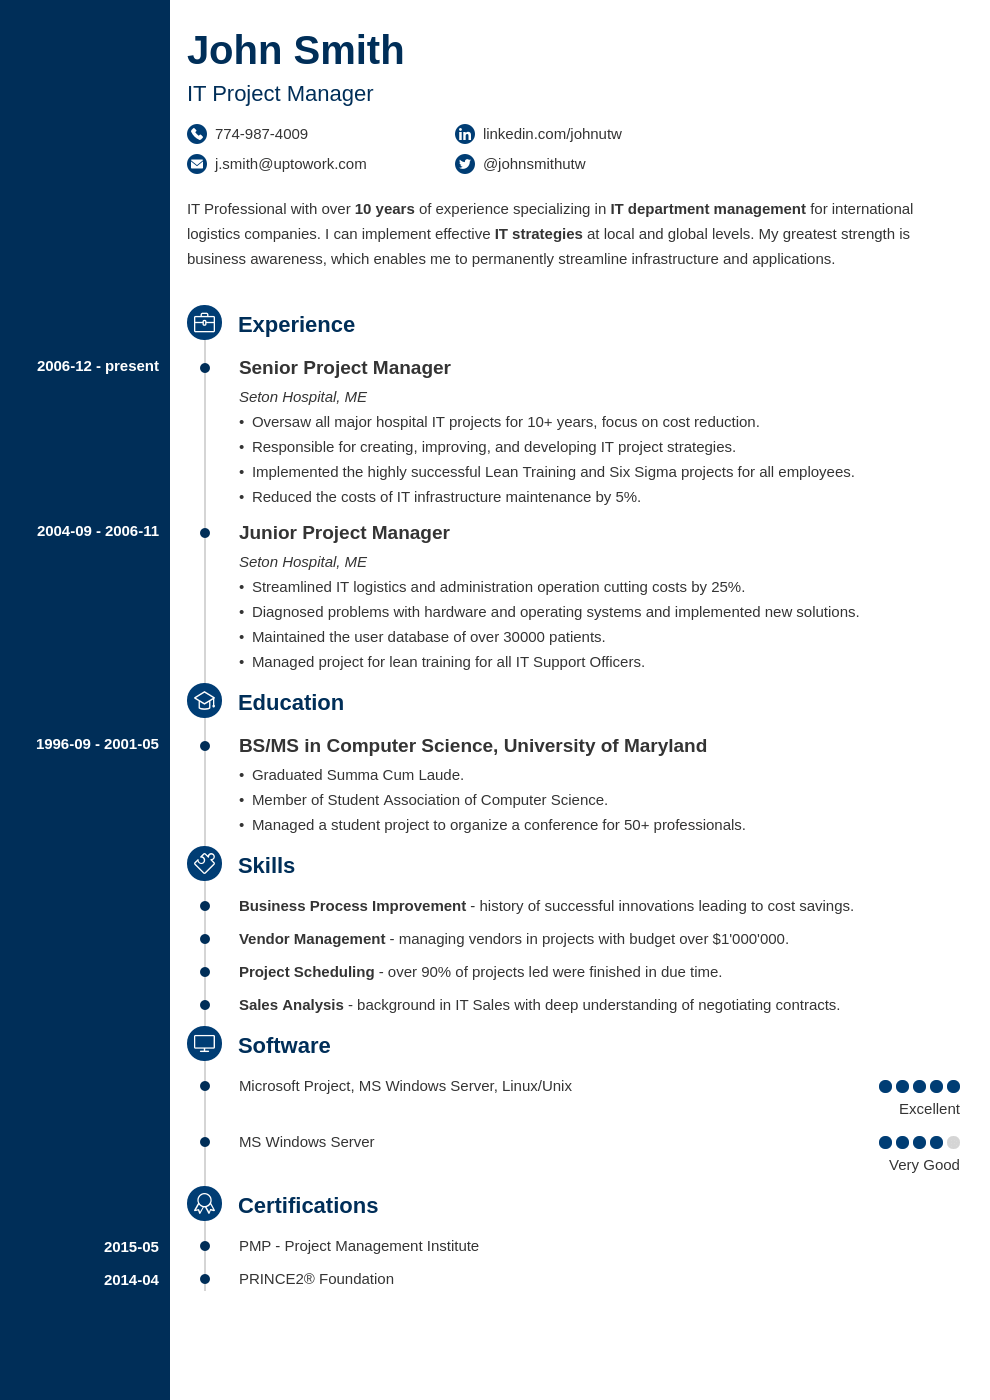 18 Professional Cv Templates Optimized For 2019 Download In